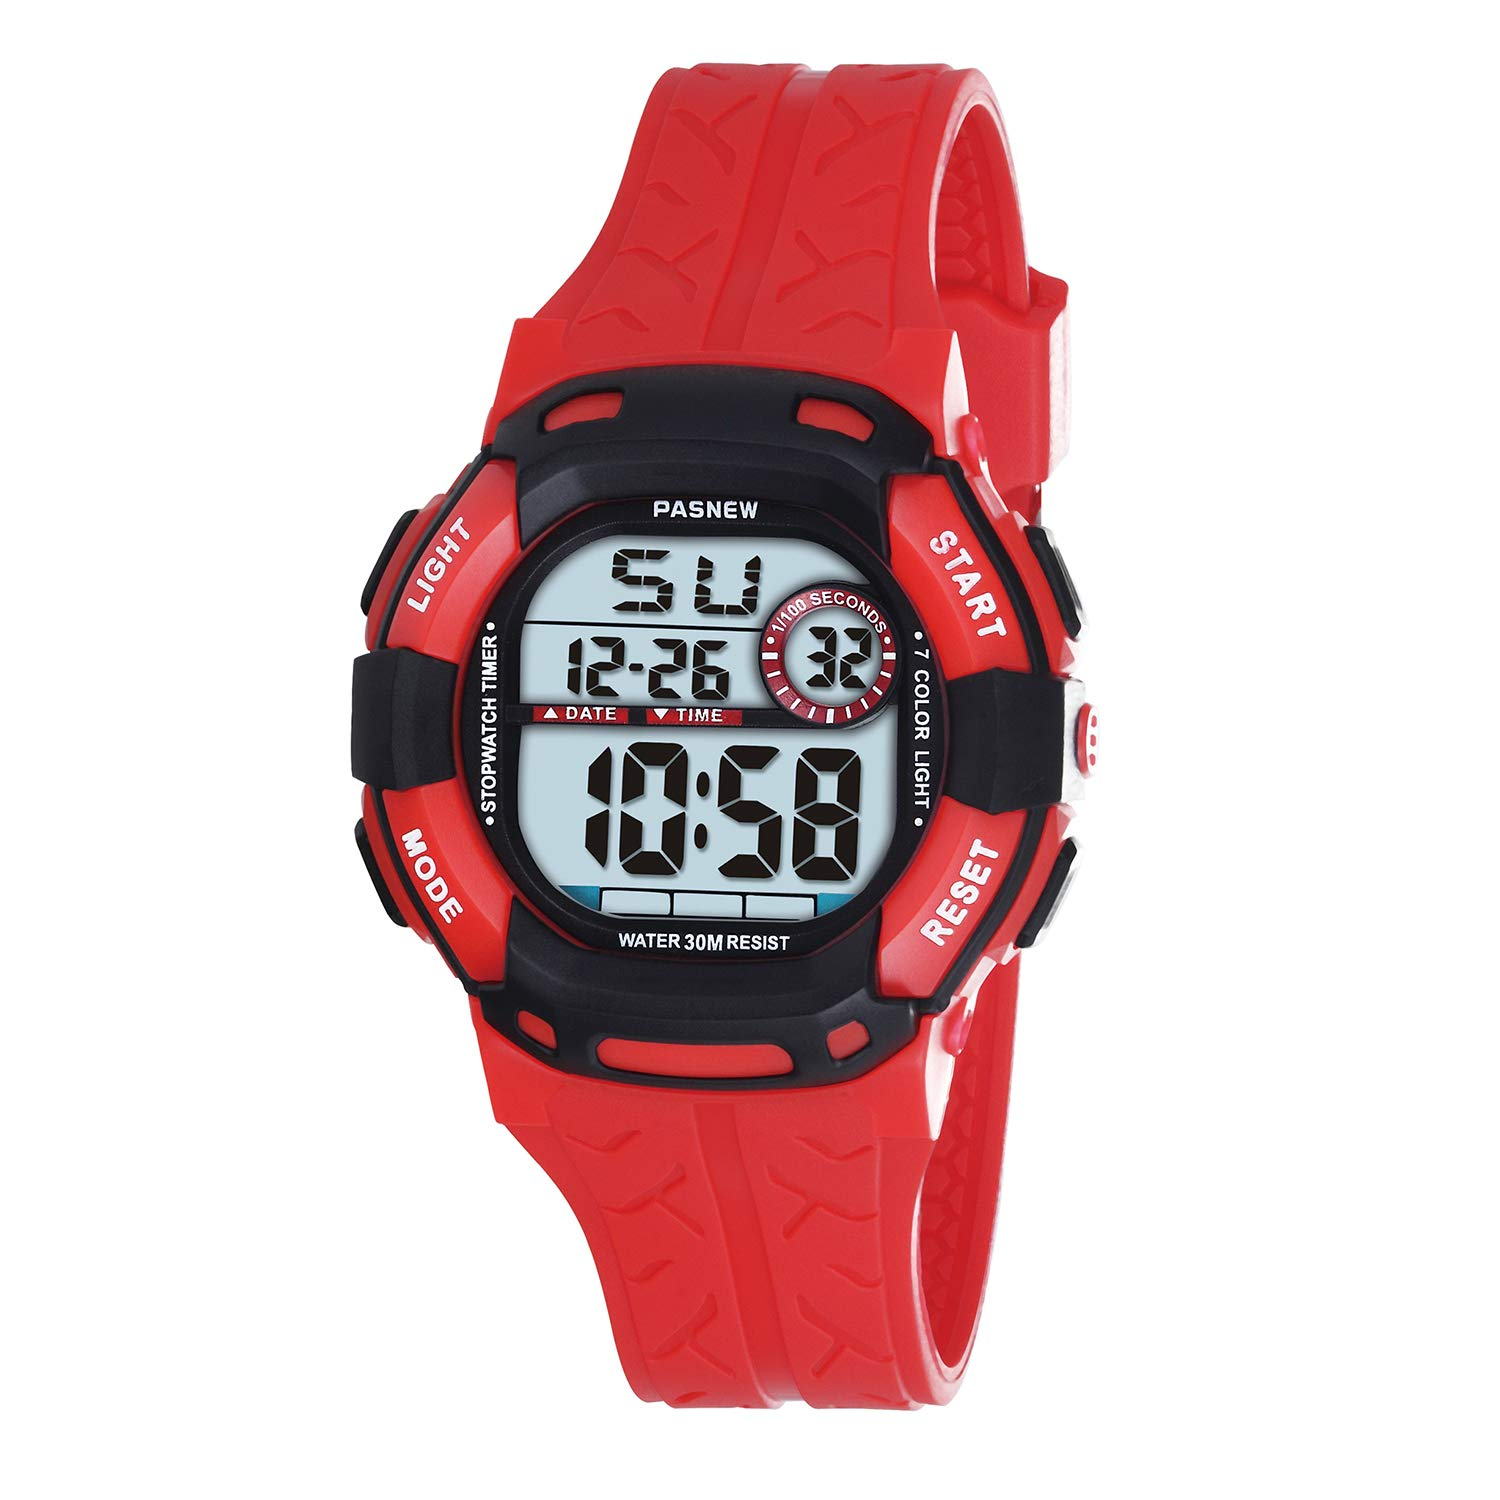 PASNEW Kids Watches Waterproof 100FT Digital Sports Wristwatch with 7-Color Flashing LED Light Alarm Stopwatch Chime Date Day RED Black